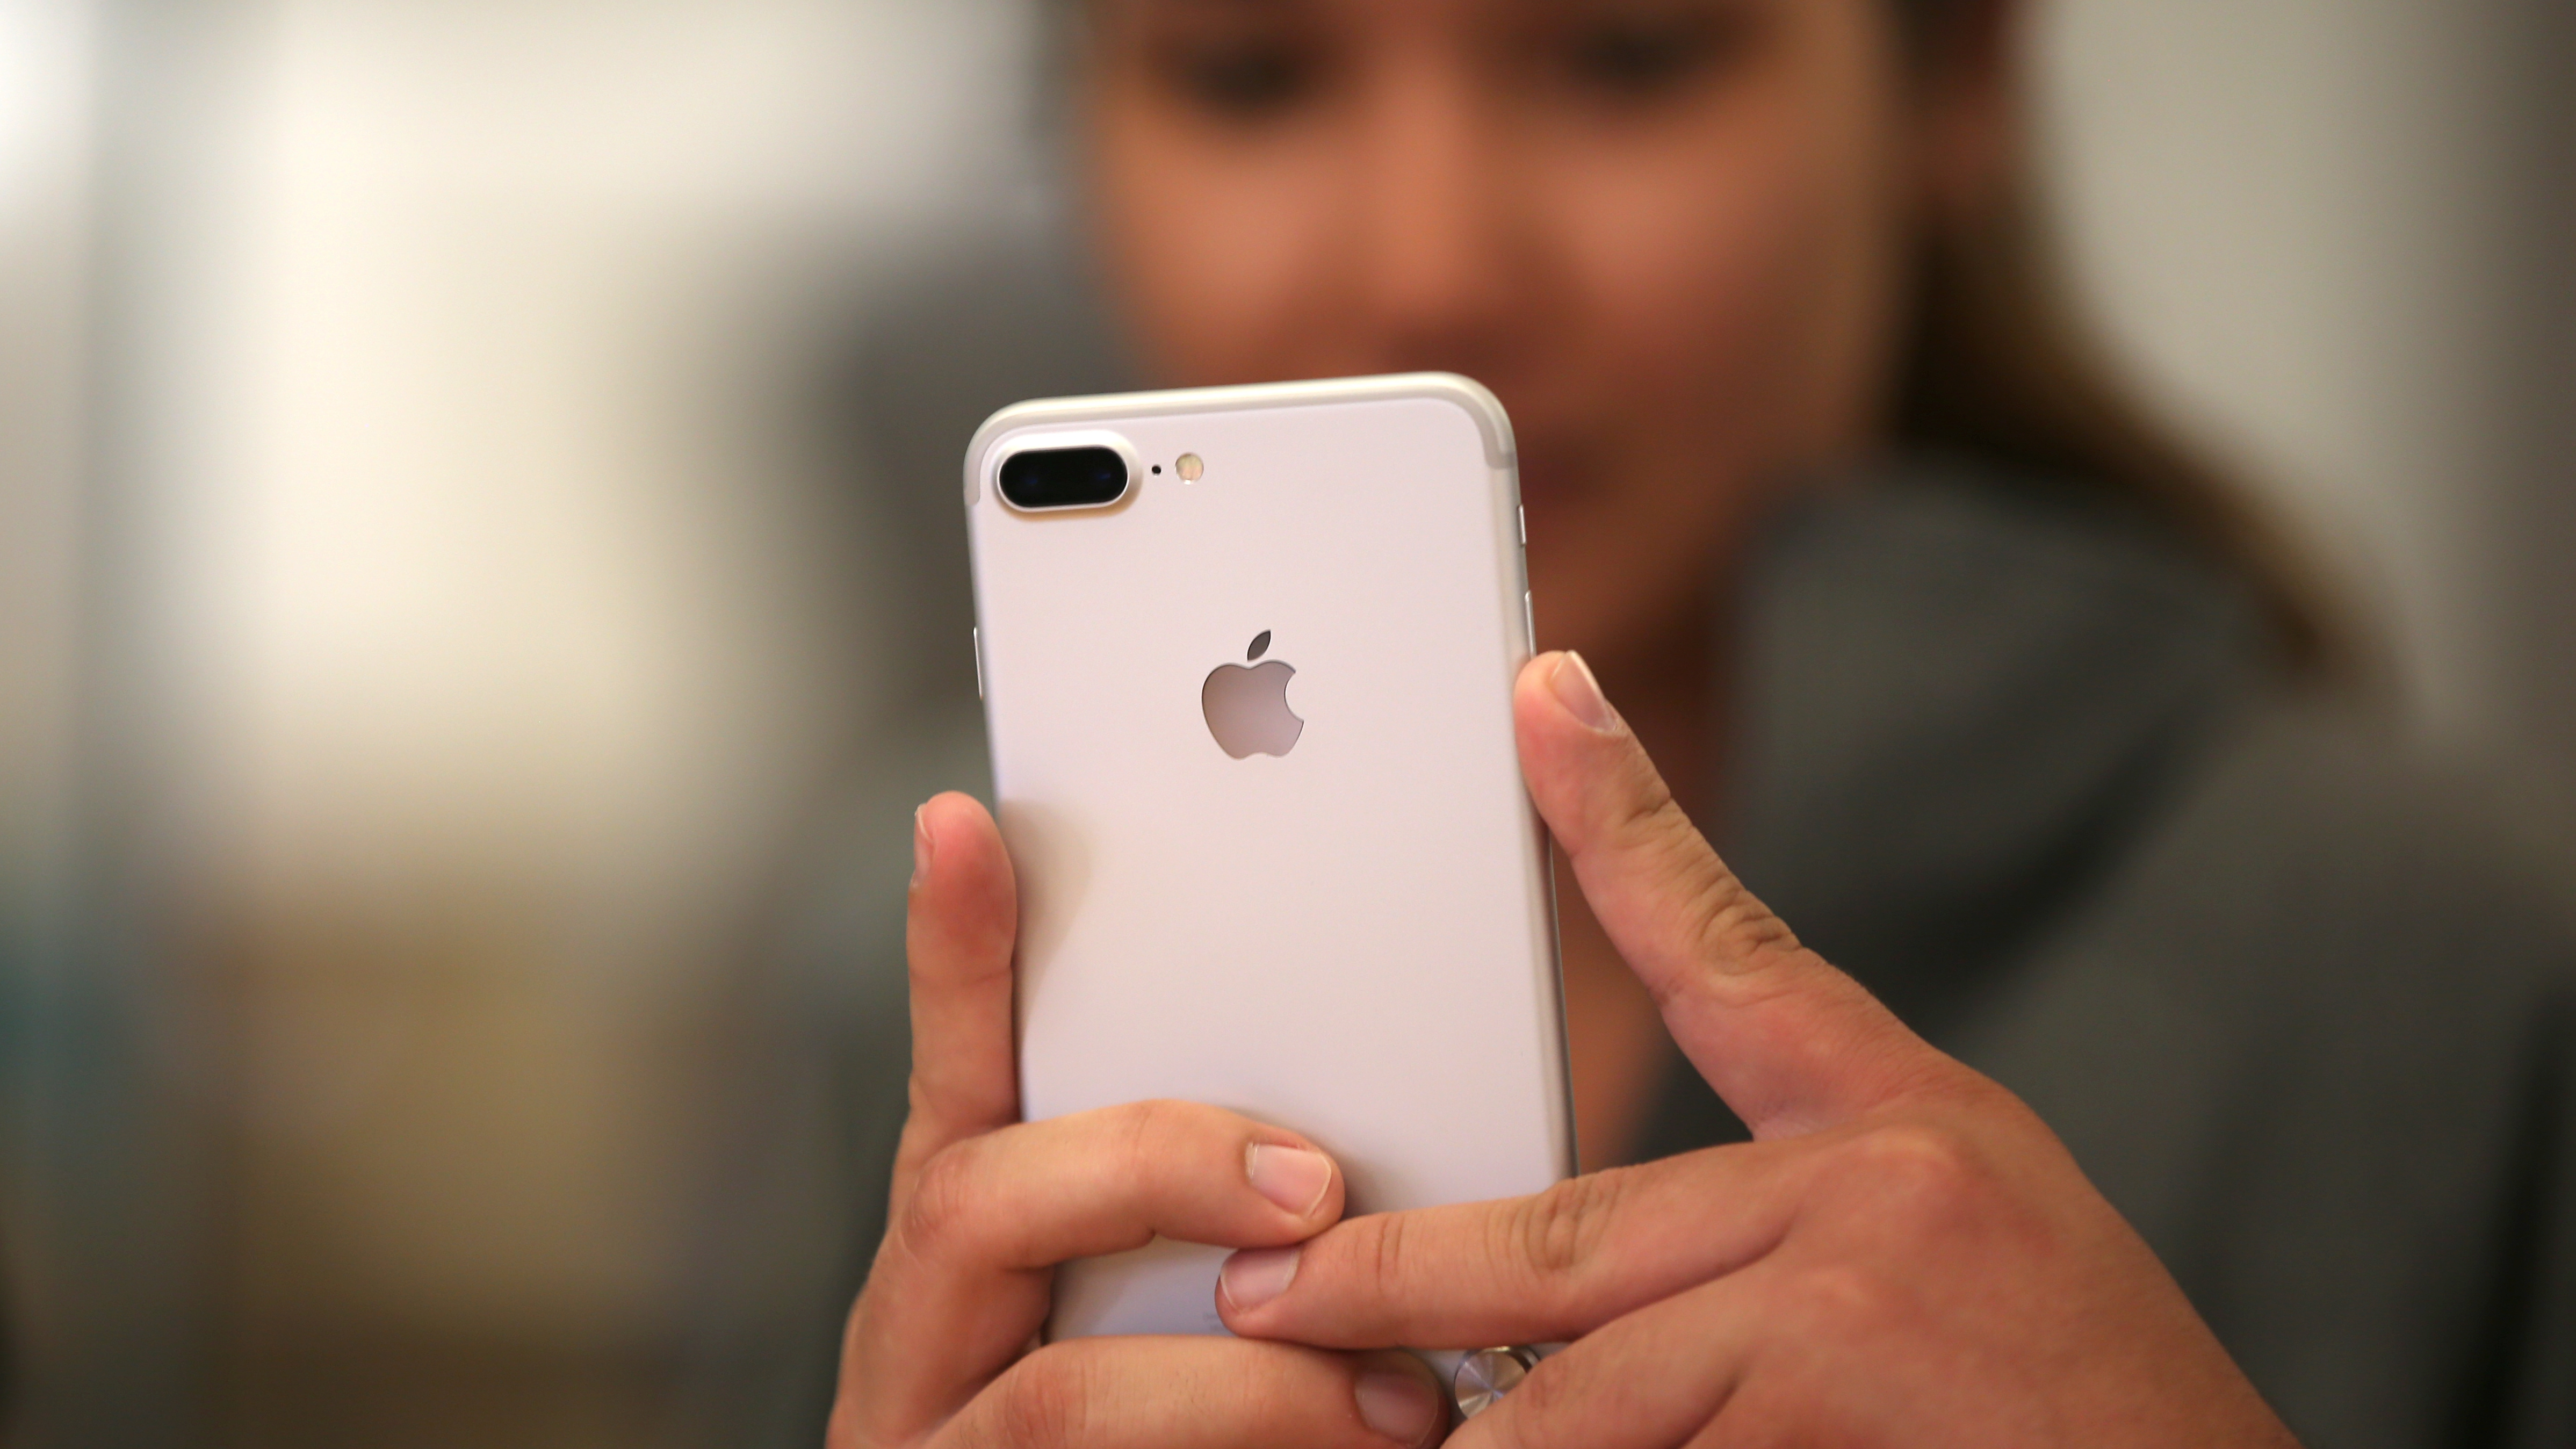 A customer views the new iPhone 7 smartphone inside an Apple Inc. store in Los Angeles